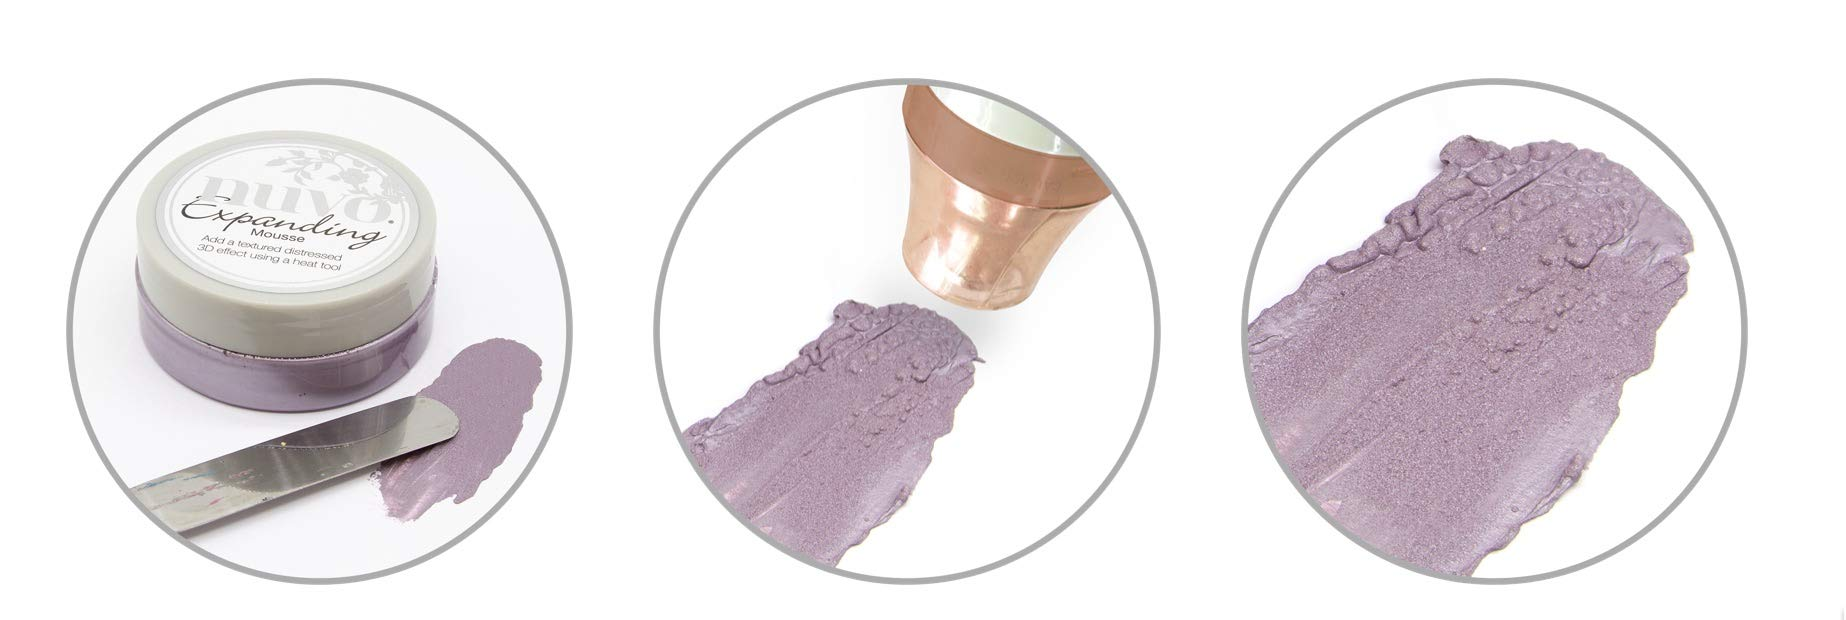 Nuvo Expanding Mousse - Red Leather, Misted Mauve and Old Linen